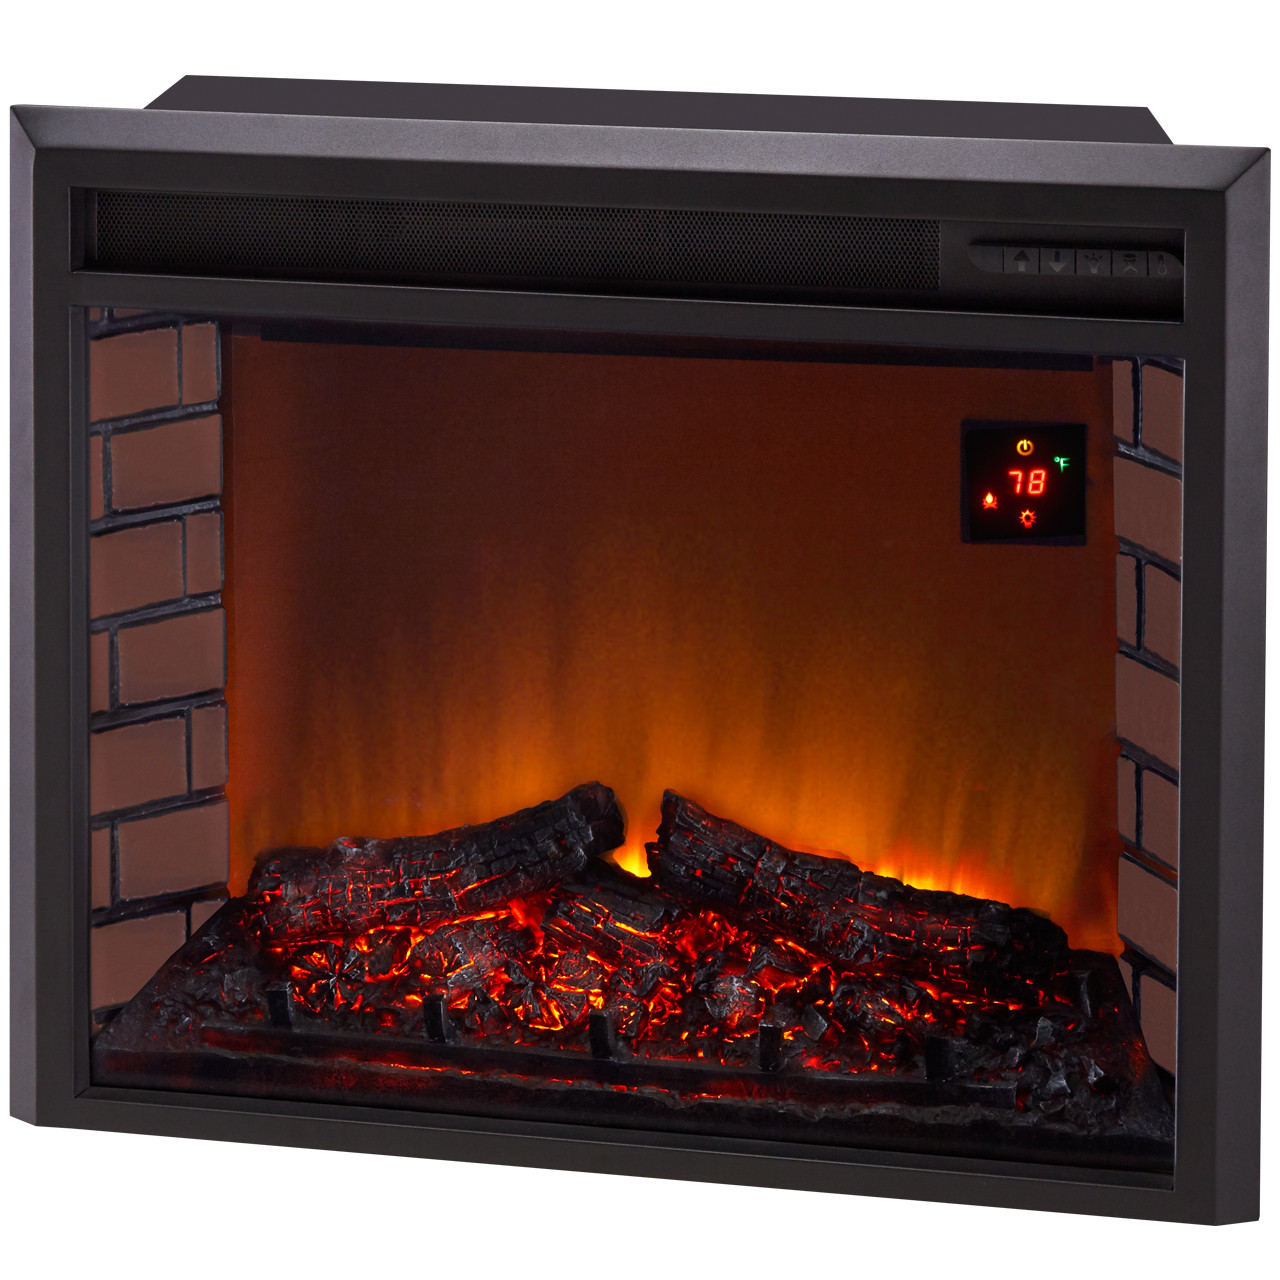 duluth forge fireplace gas log sets grills factory buys direct rh factorybuysdirect com